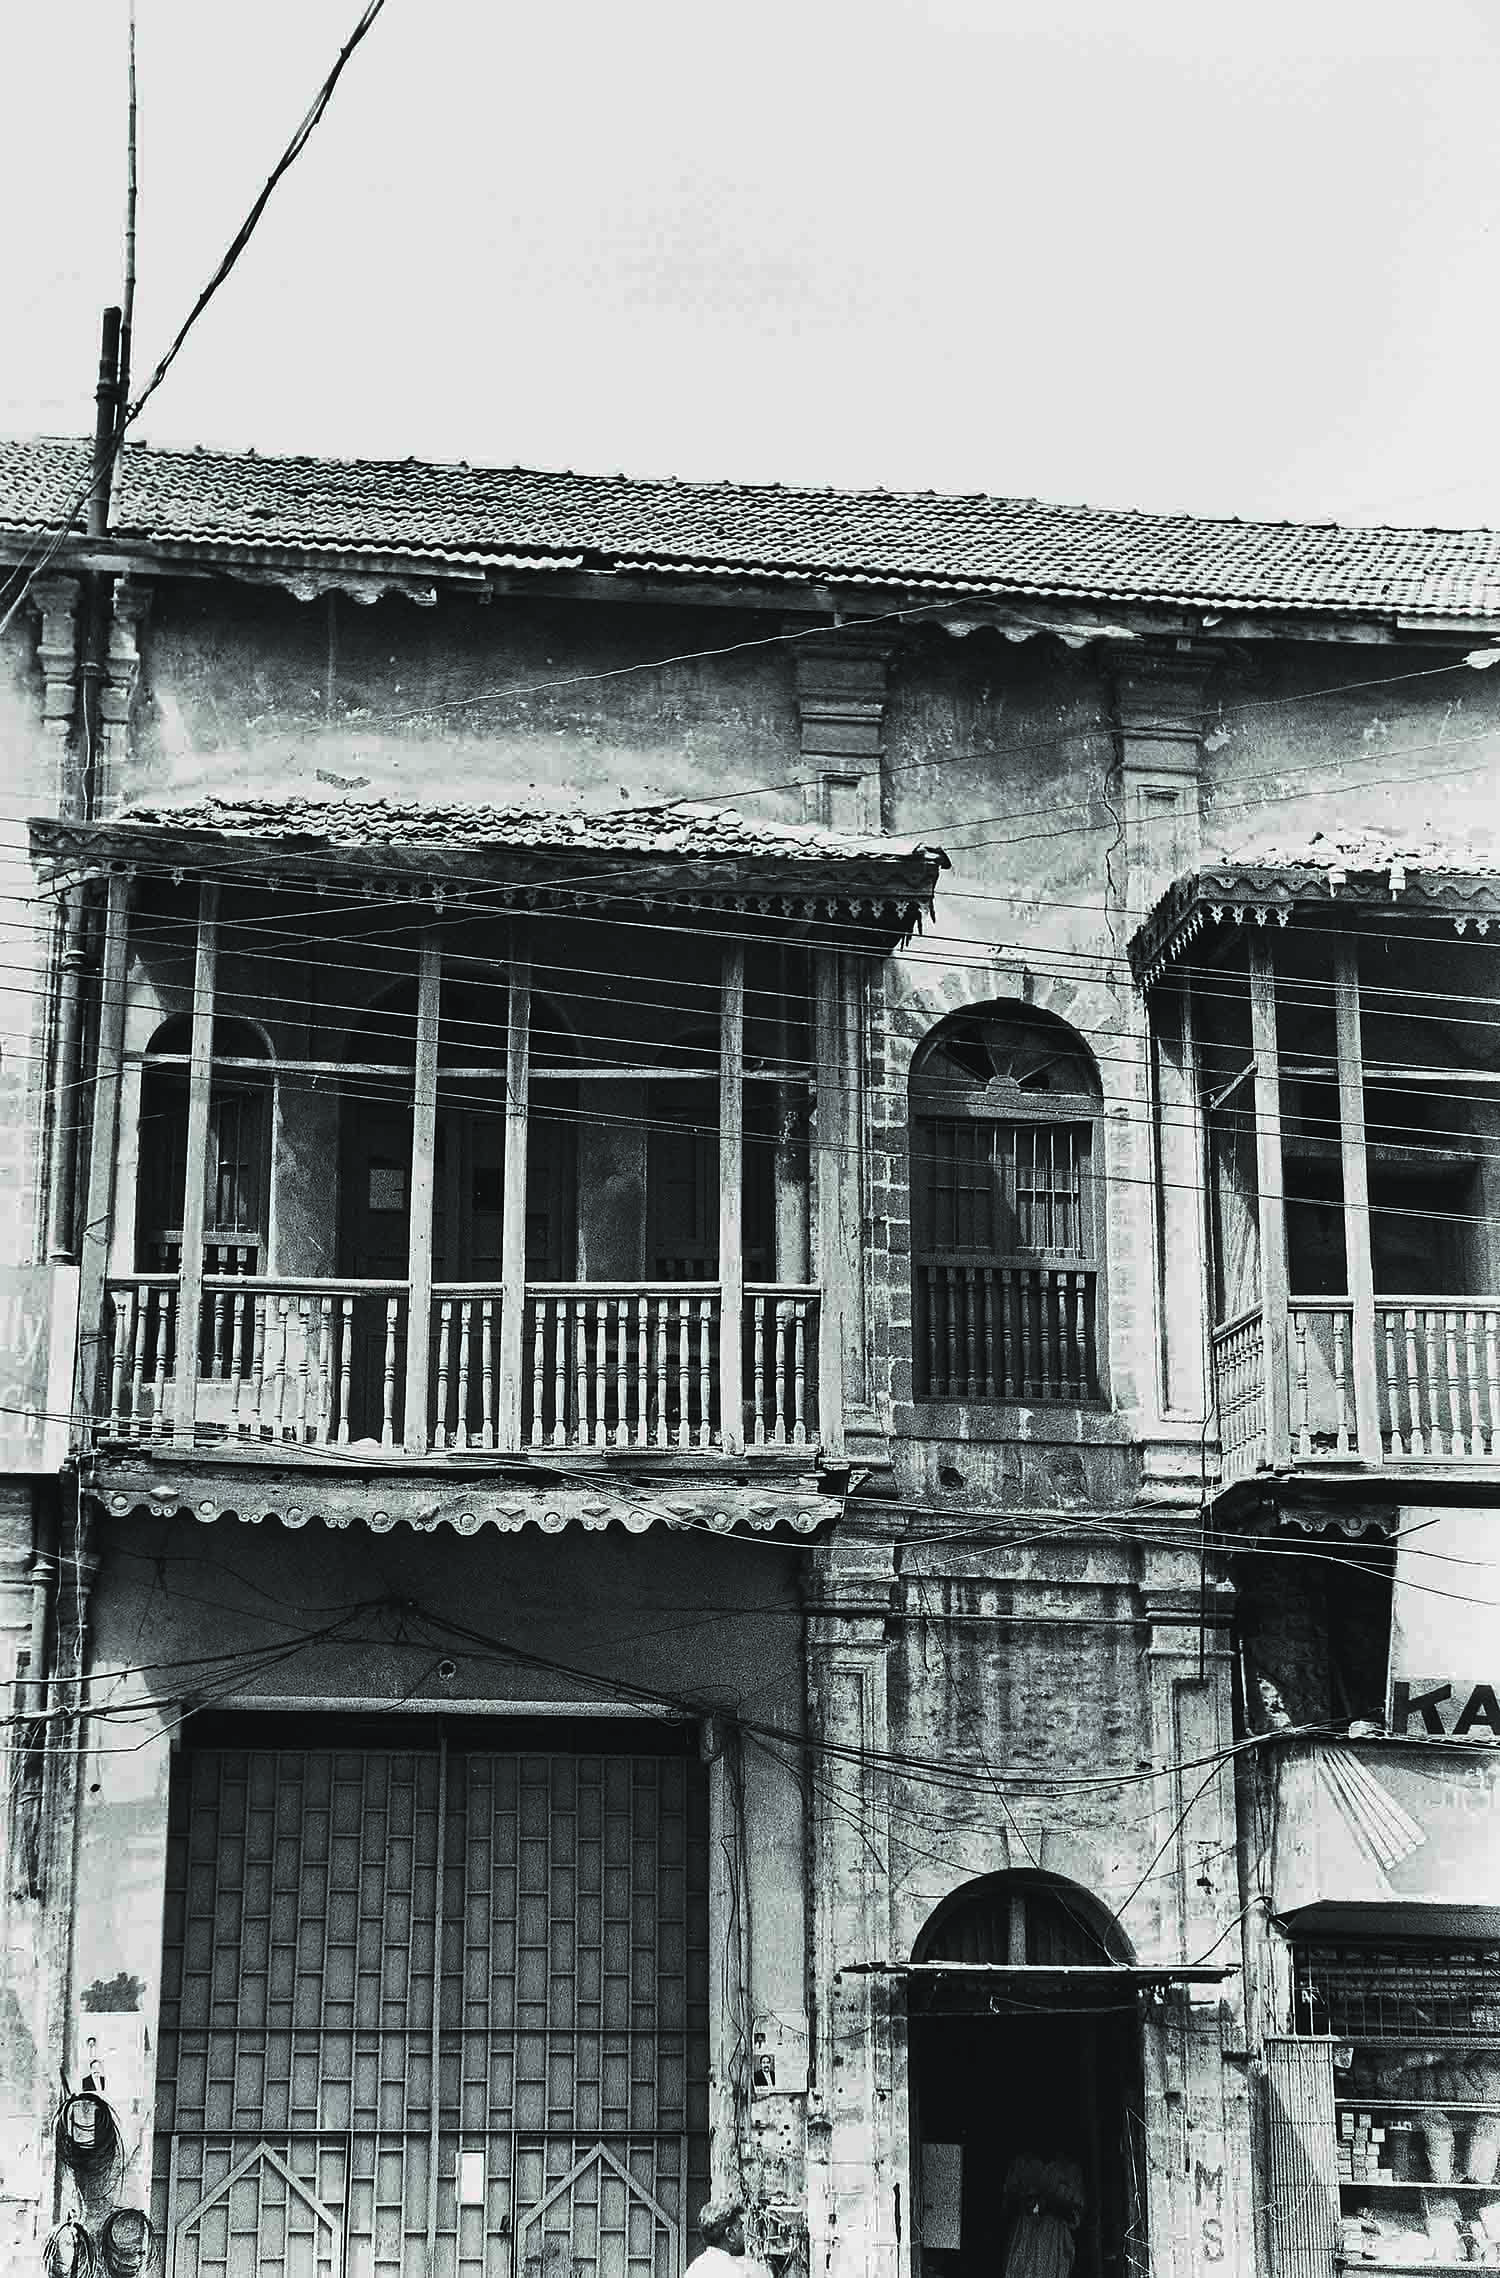 This photograph, taken by Arif Mahmood in 2004, captures Haroon Chambers, the headquarters of Dawn Karachi in the New Challi area when the newspaper was established in August 1947. Dawn was edited and printed there until the offices were moved to Haroon House on Dr Ziauddin Ahmed Road on October 27, 1968.